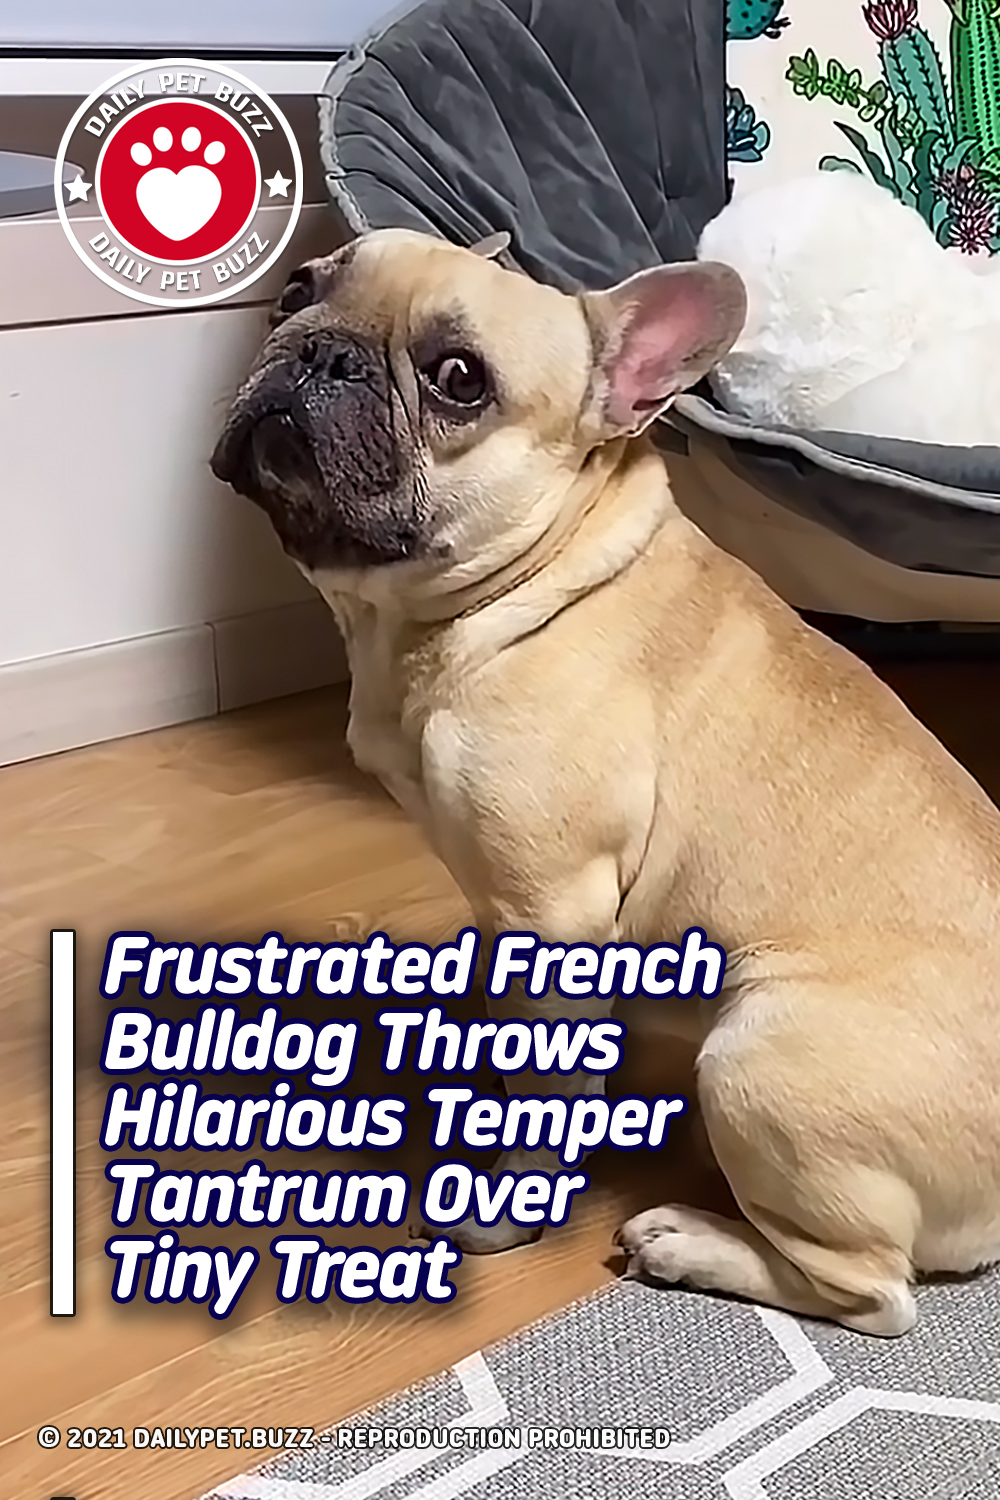 Frustrated French Bulldog Throws Hilarious Temper Tantrum Over Tiny Treat